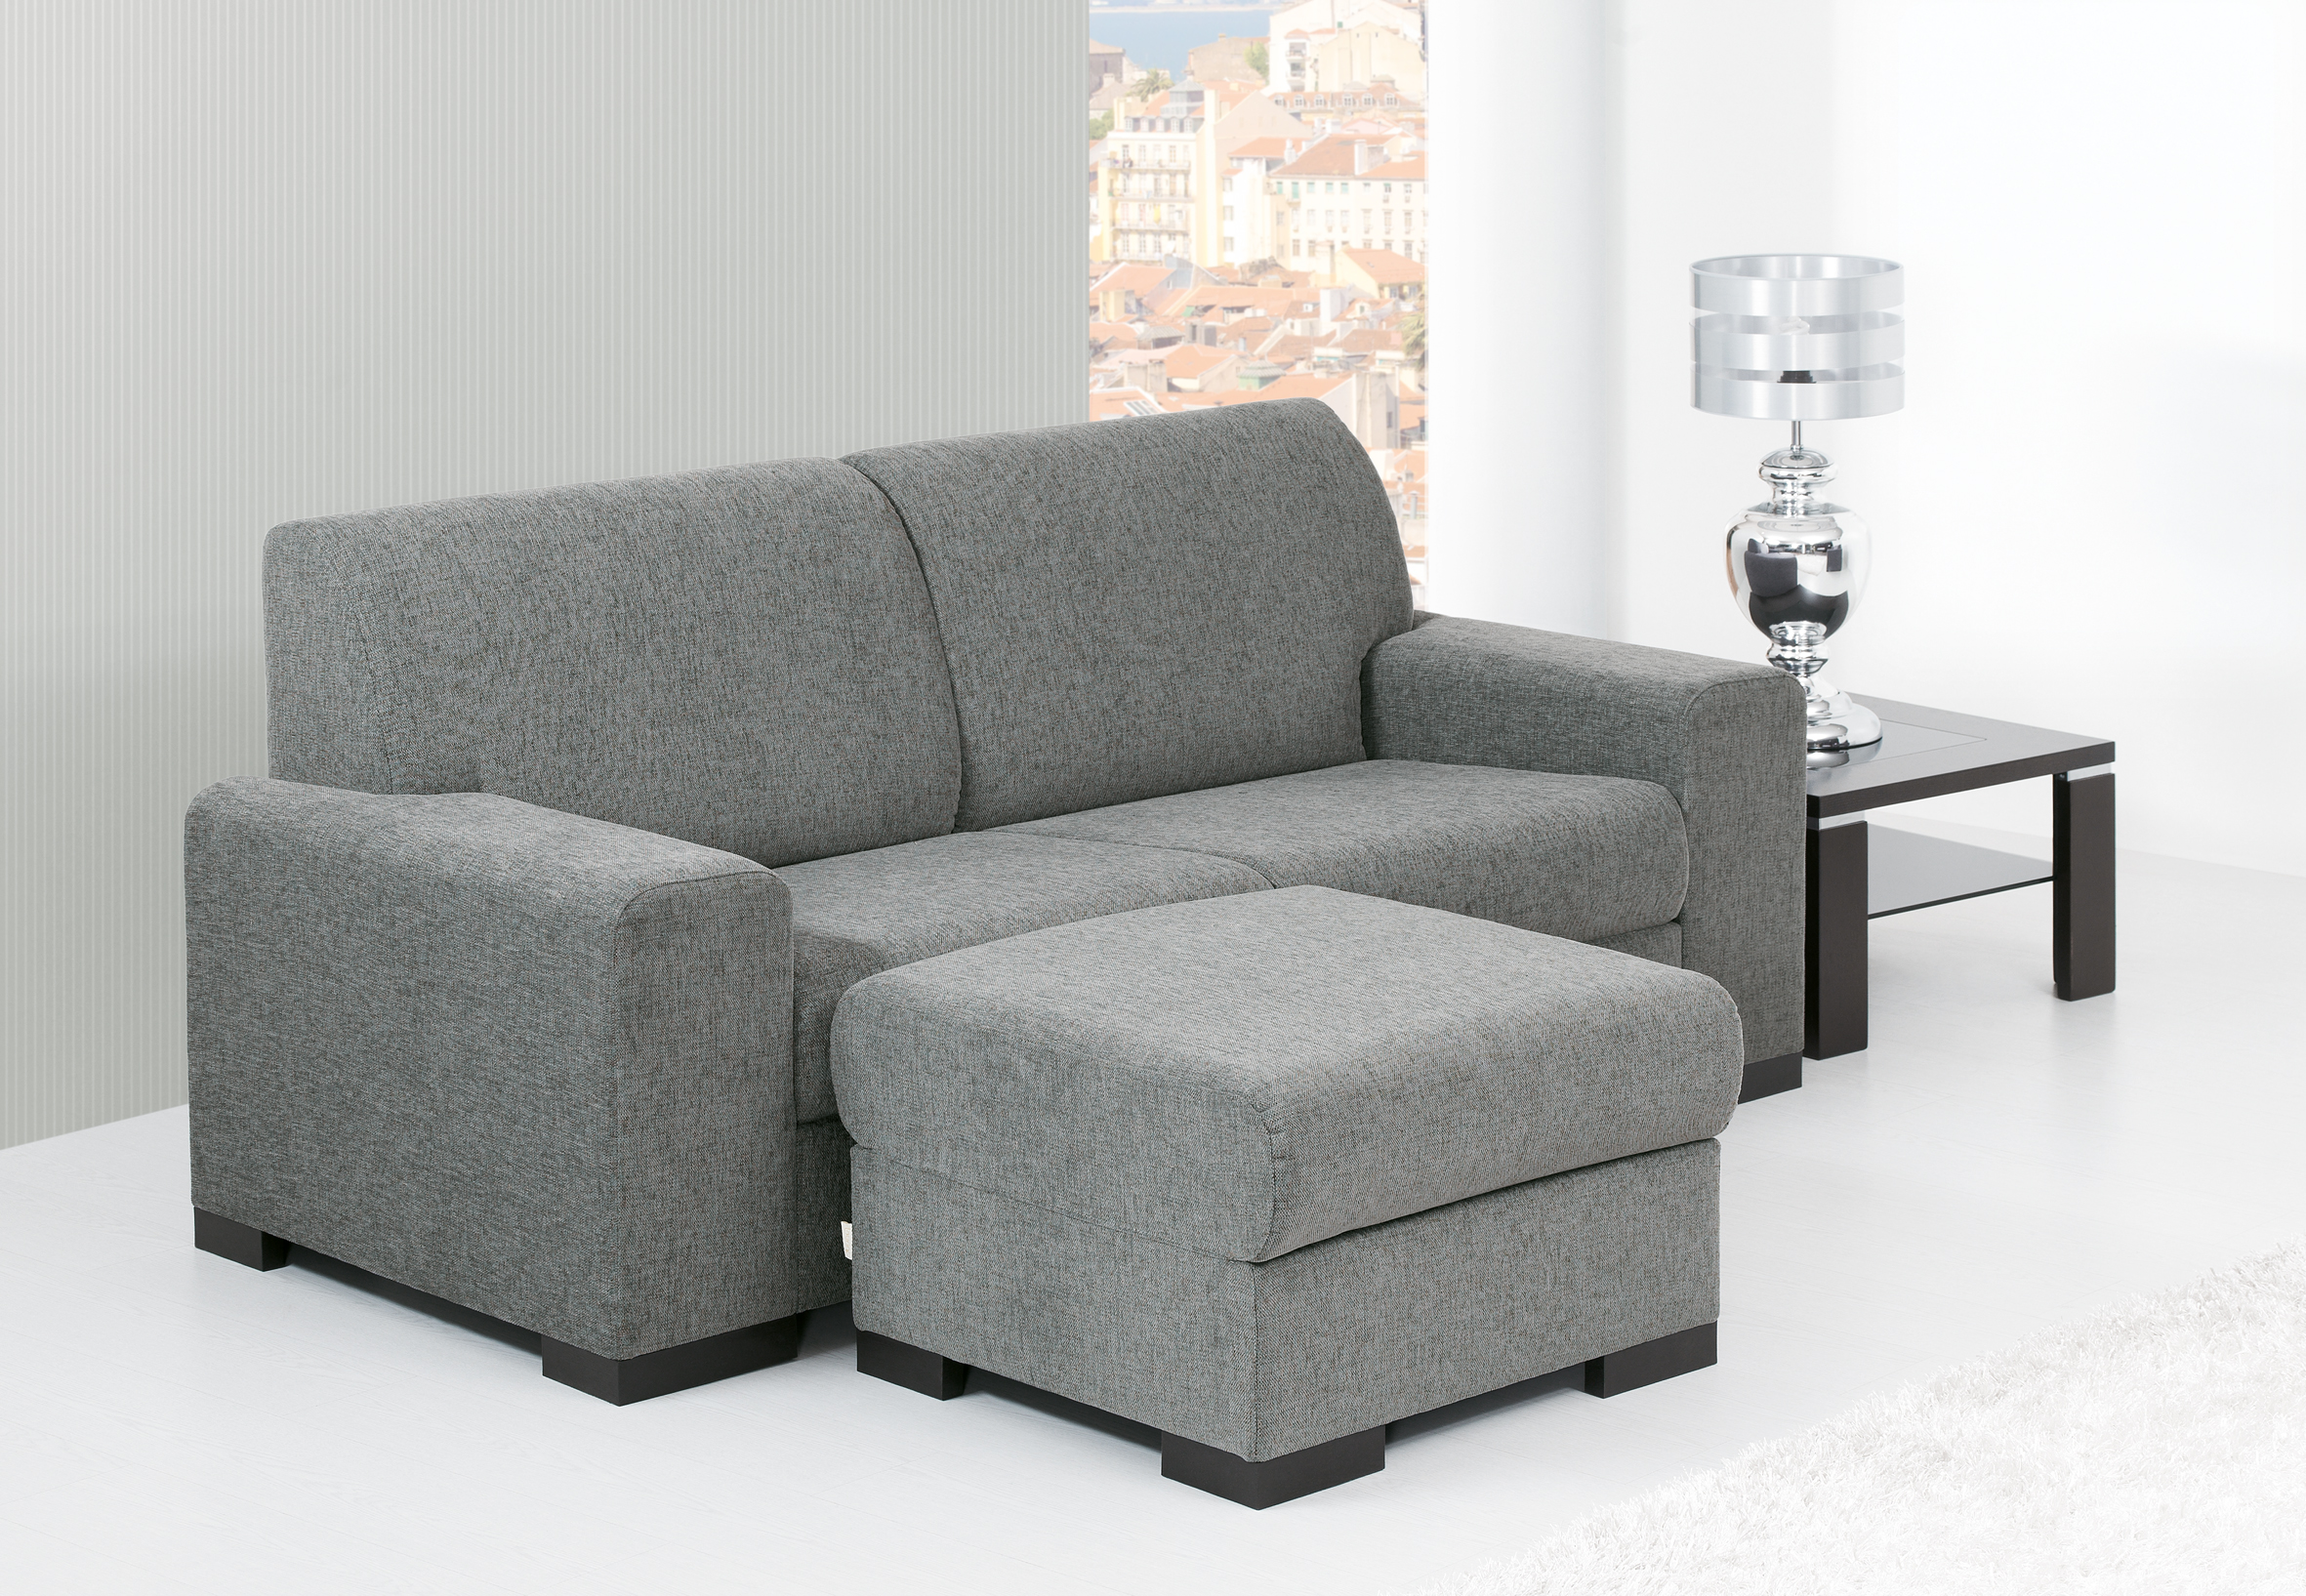 Sof boss 2 lugares mundo do sof for Mundo sofas